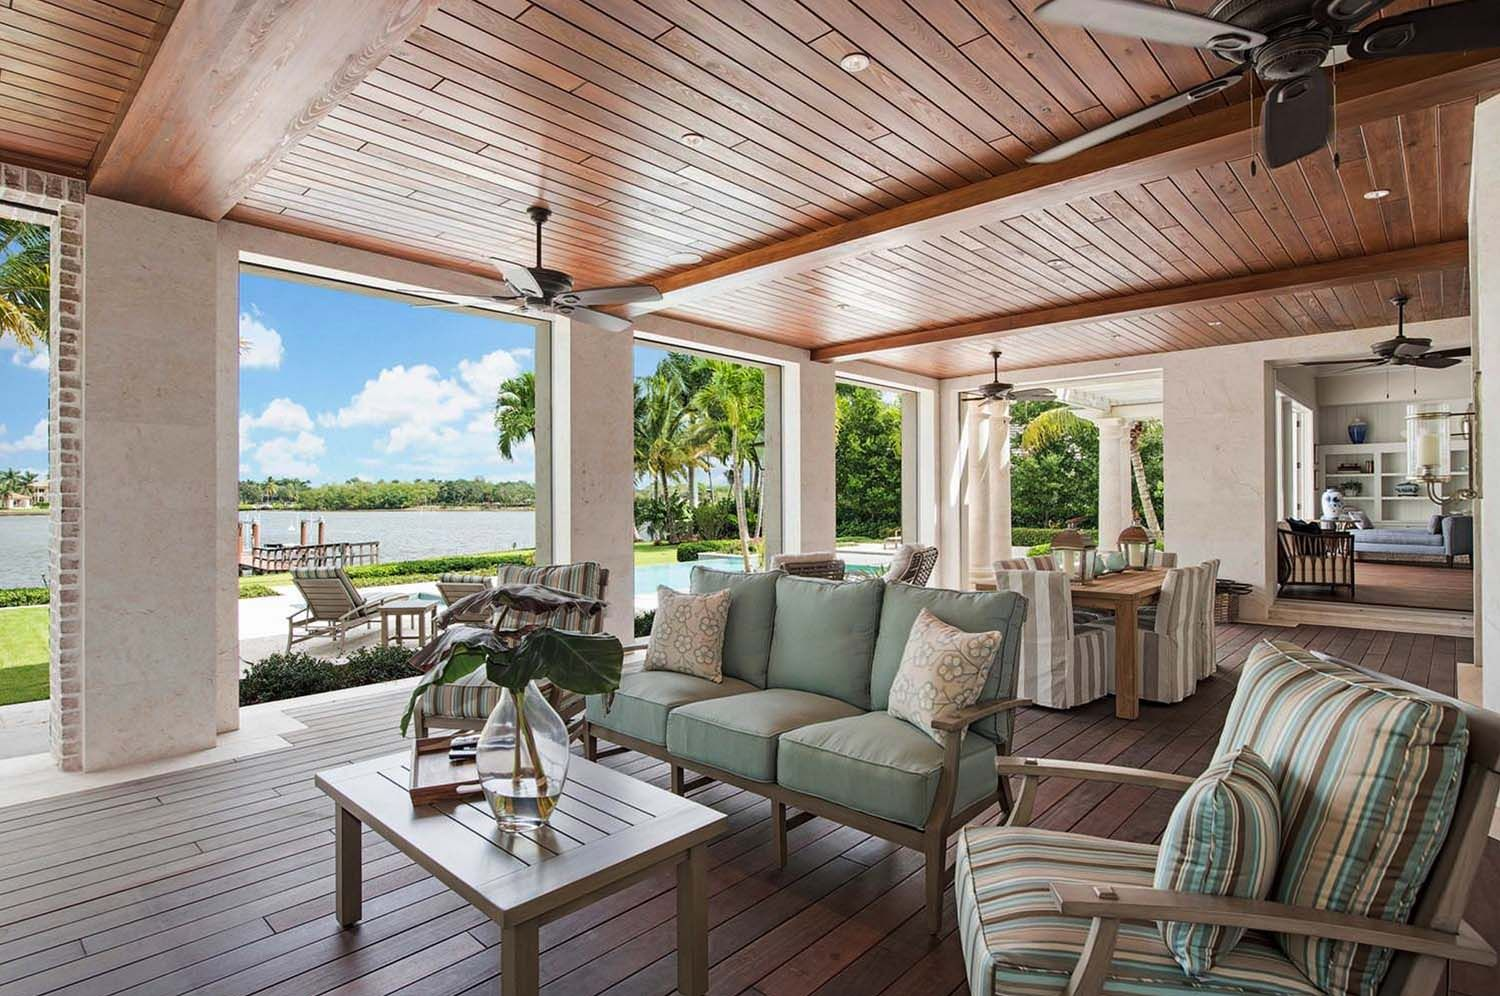 30 Amazing Beach Style Deck Ideas Promoting Relaxation Casa De Campo Outdoor Living Space Beach Style